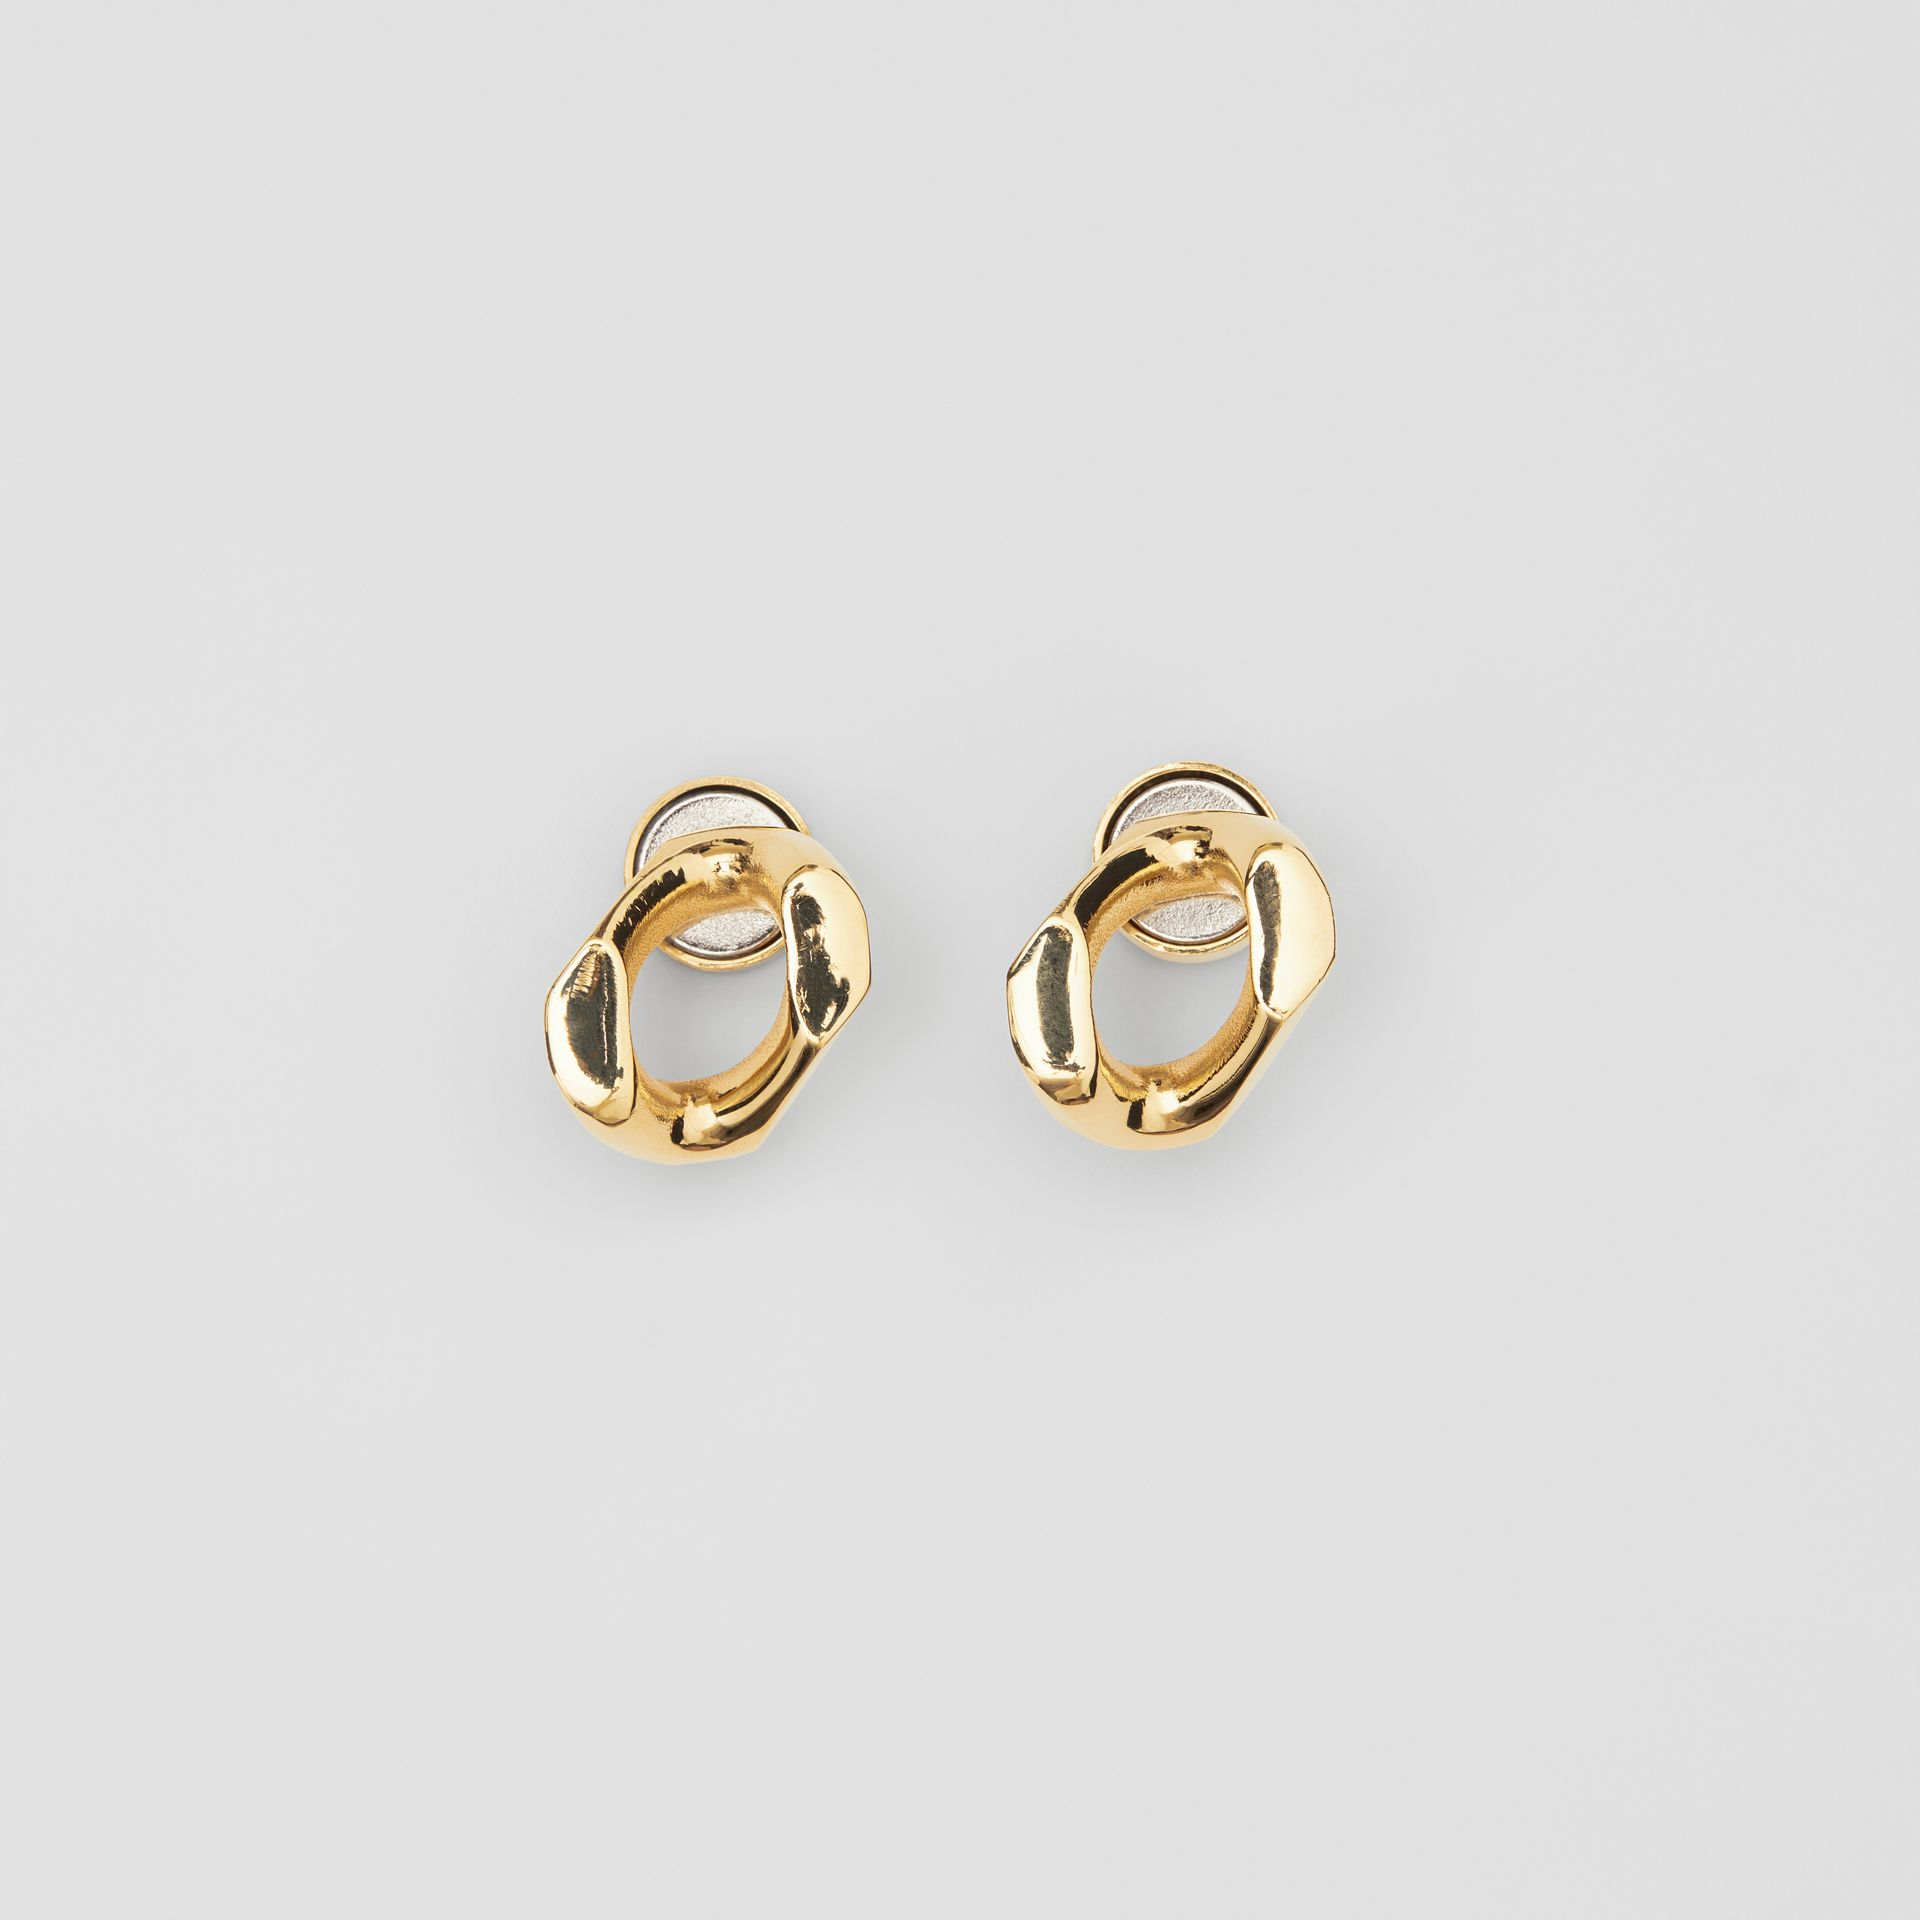 Small Gold-plated Chain Link Earrings in Light - Women | Burberry - gallery image 2